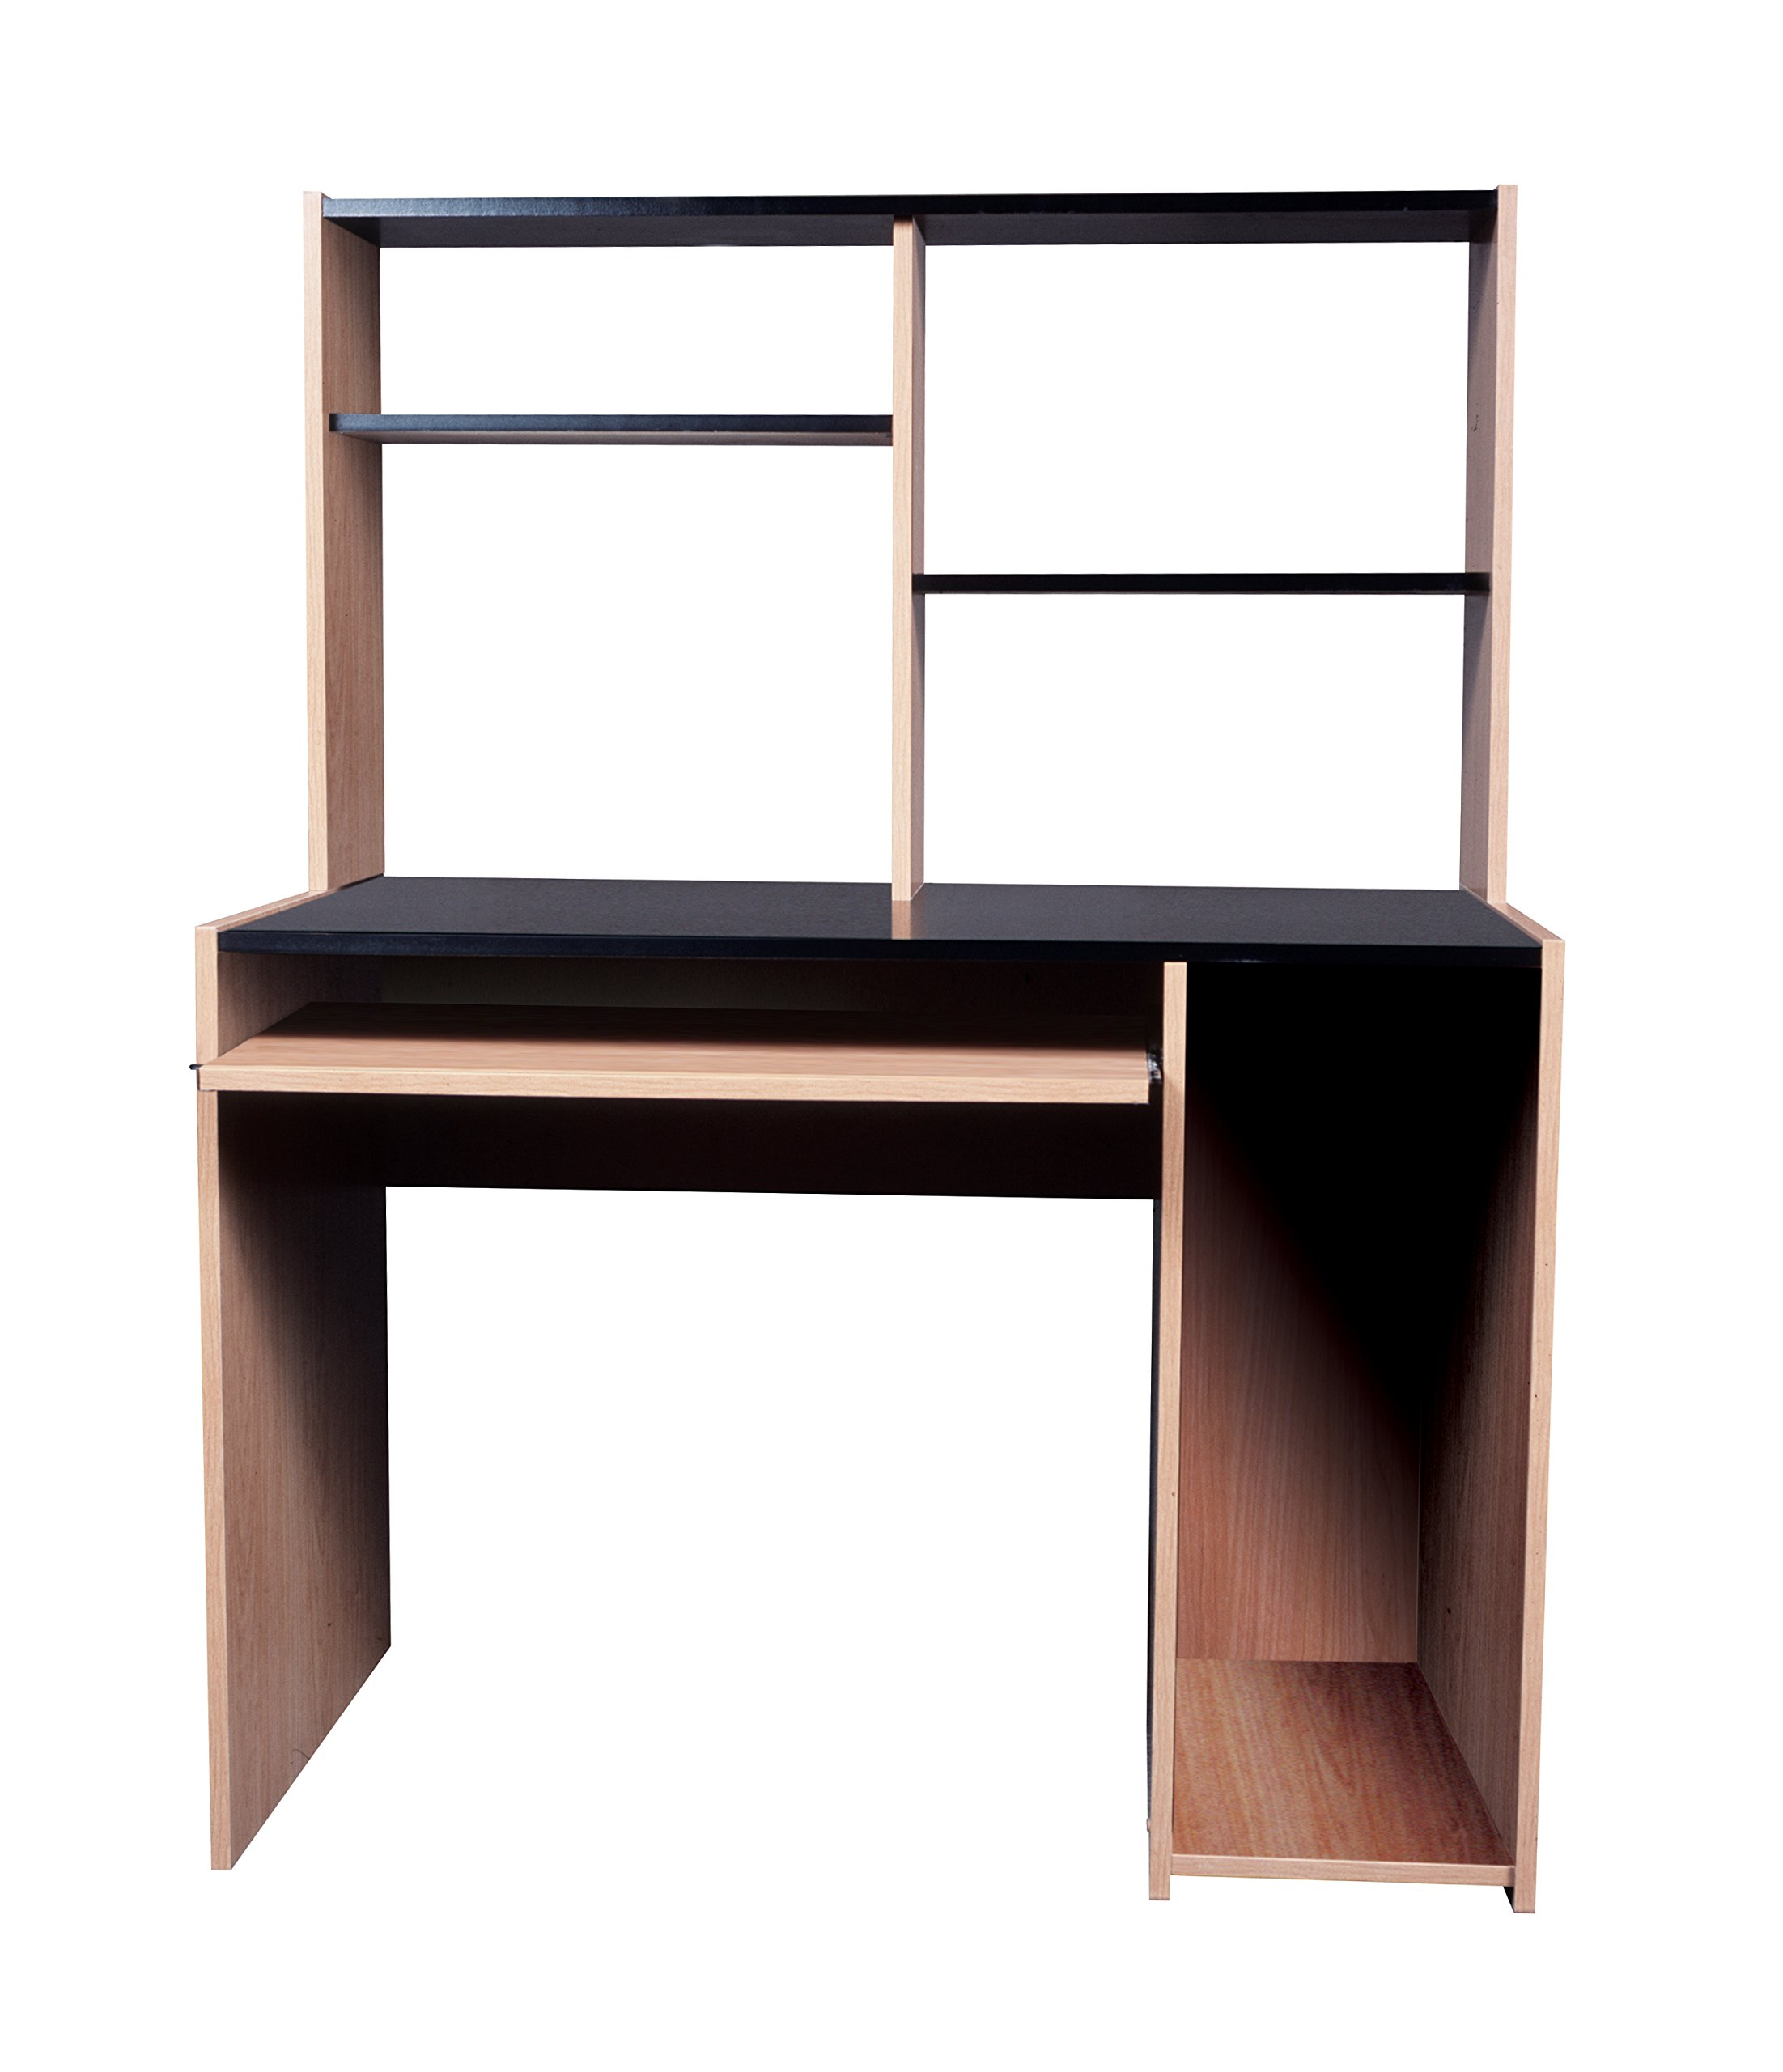 Mylex Computer Desk with Hutch, 53.23 H x 40.76 W x 23.75 D, Black with Oak, Assembly Required (38005)